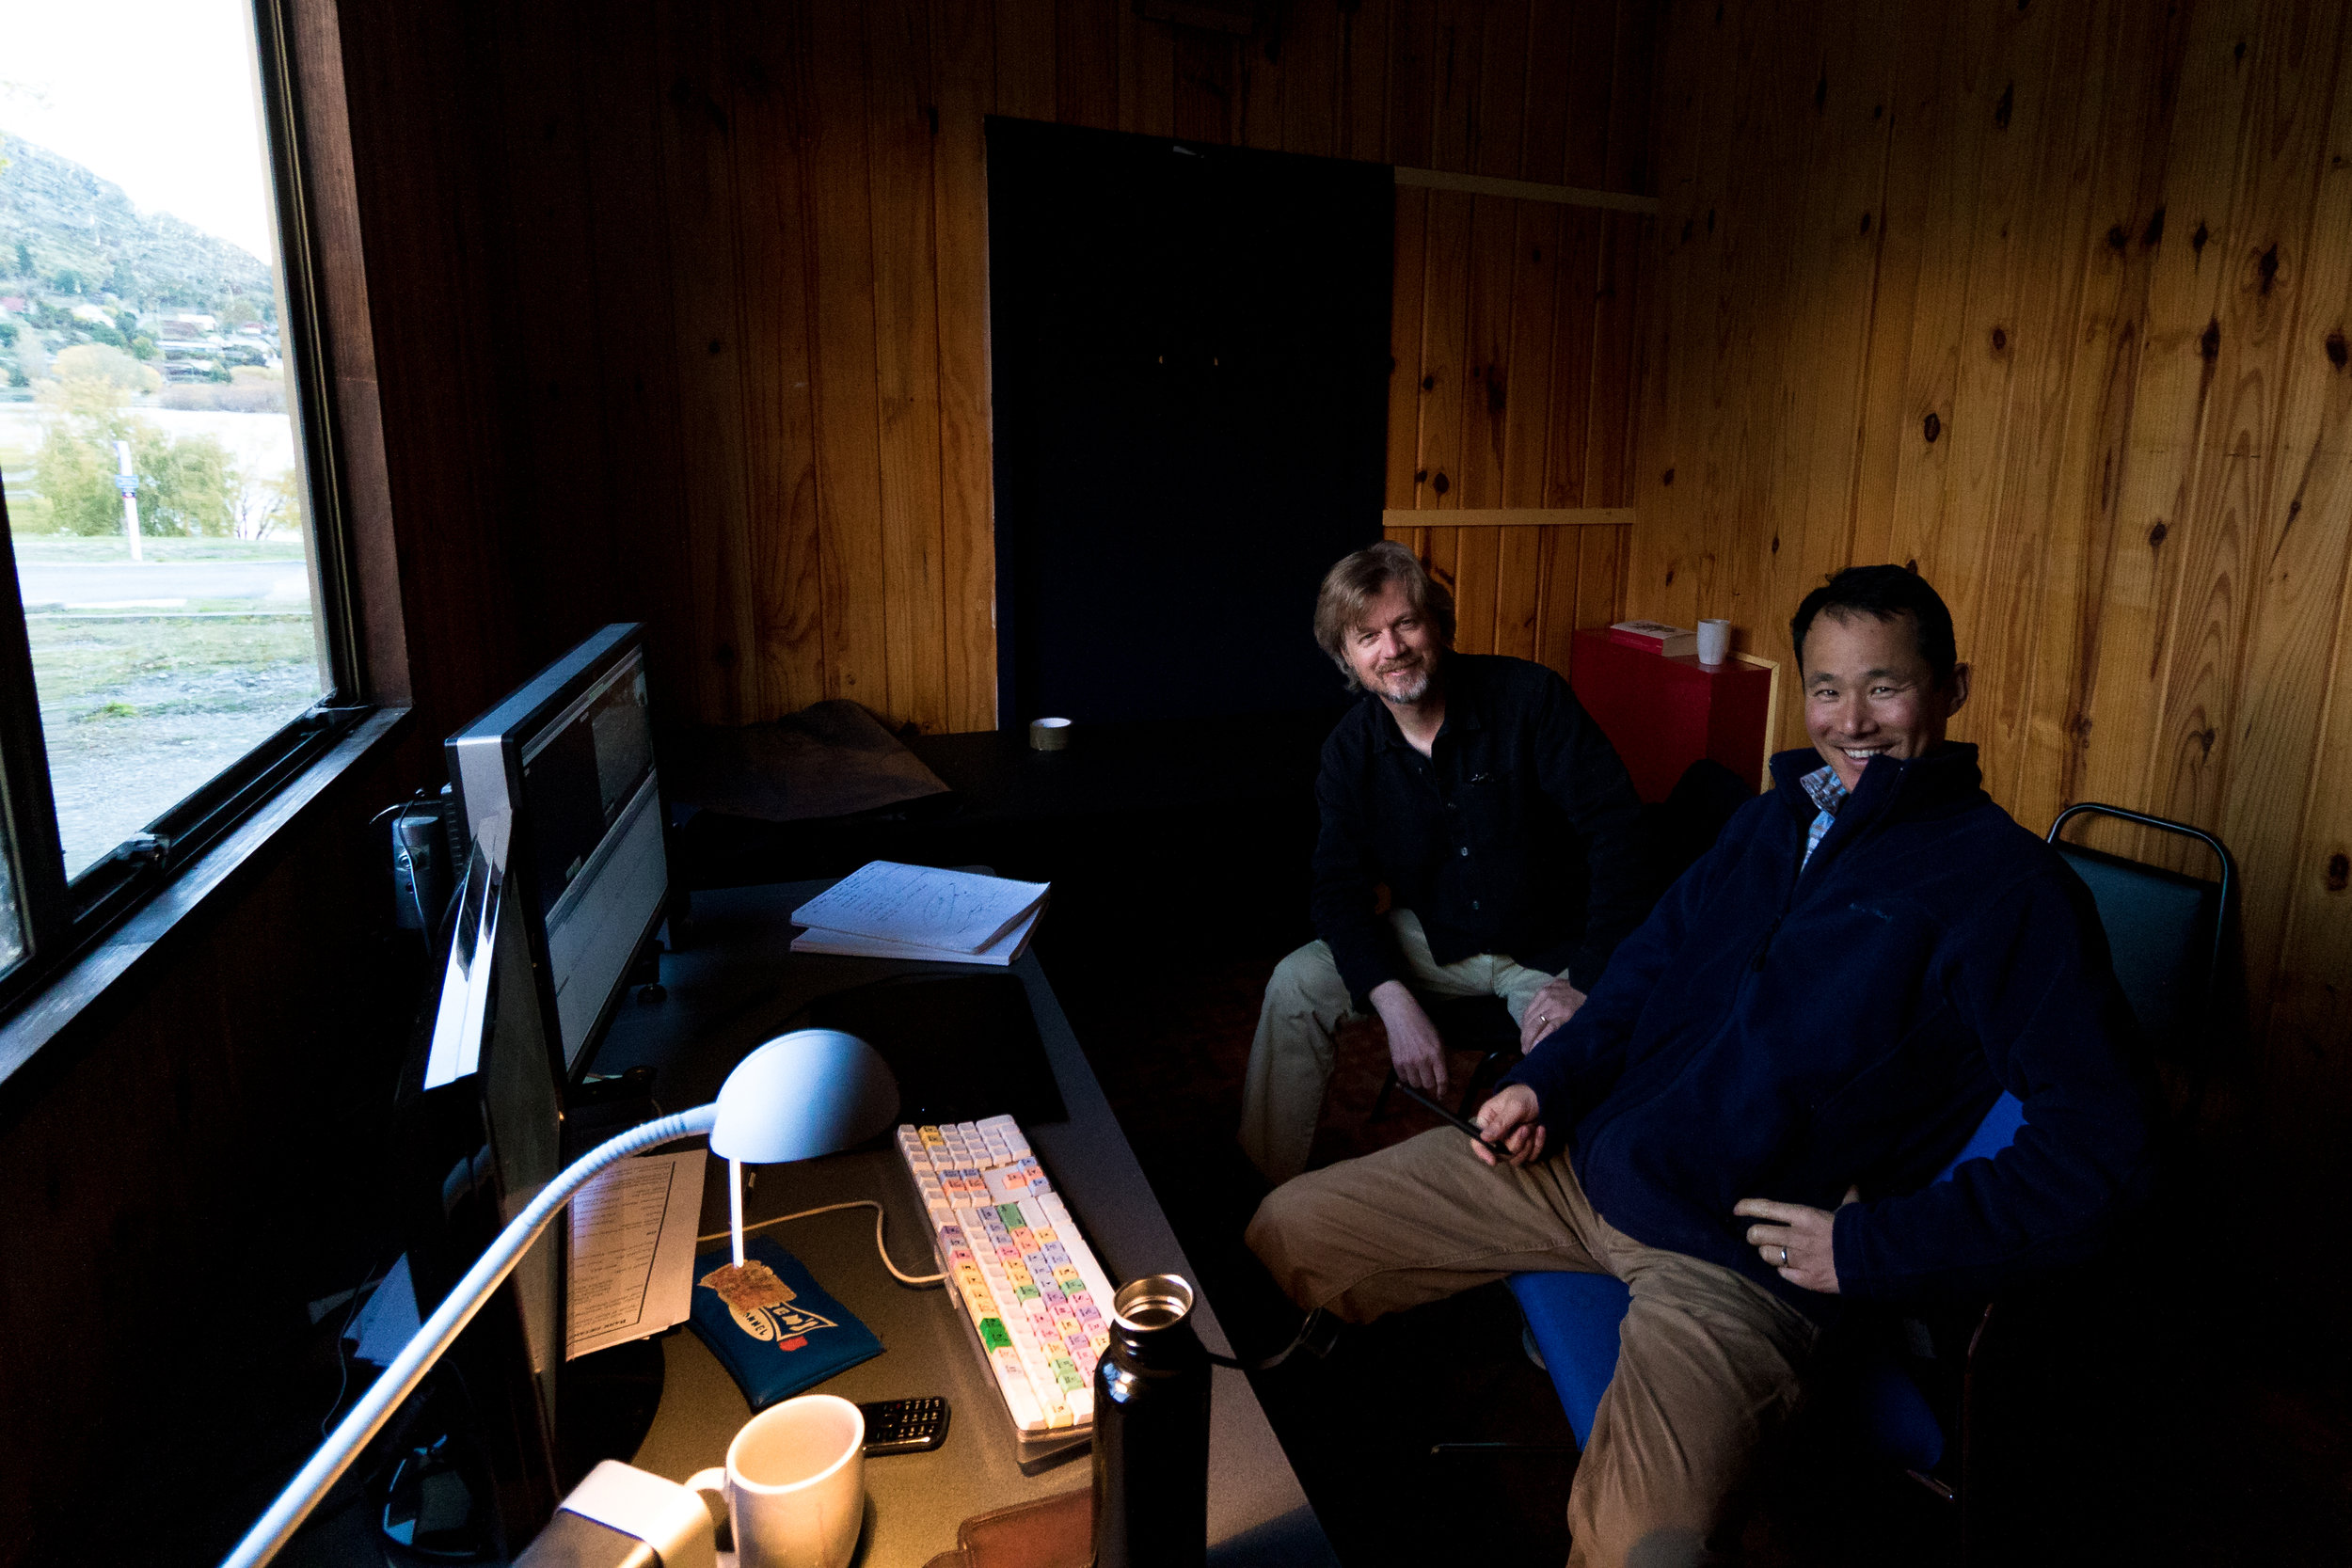 Editing Walking With Dinosaurs 3D on location in New Zealand with director Barry Cook